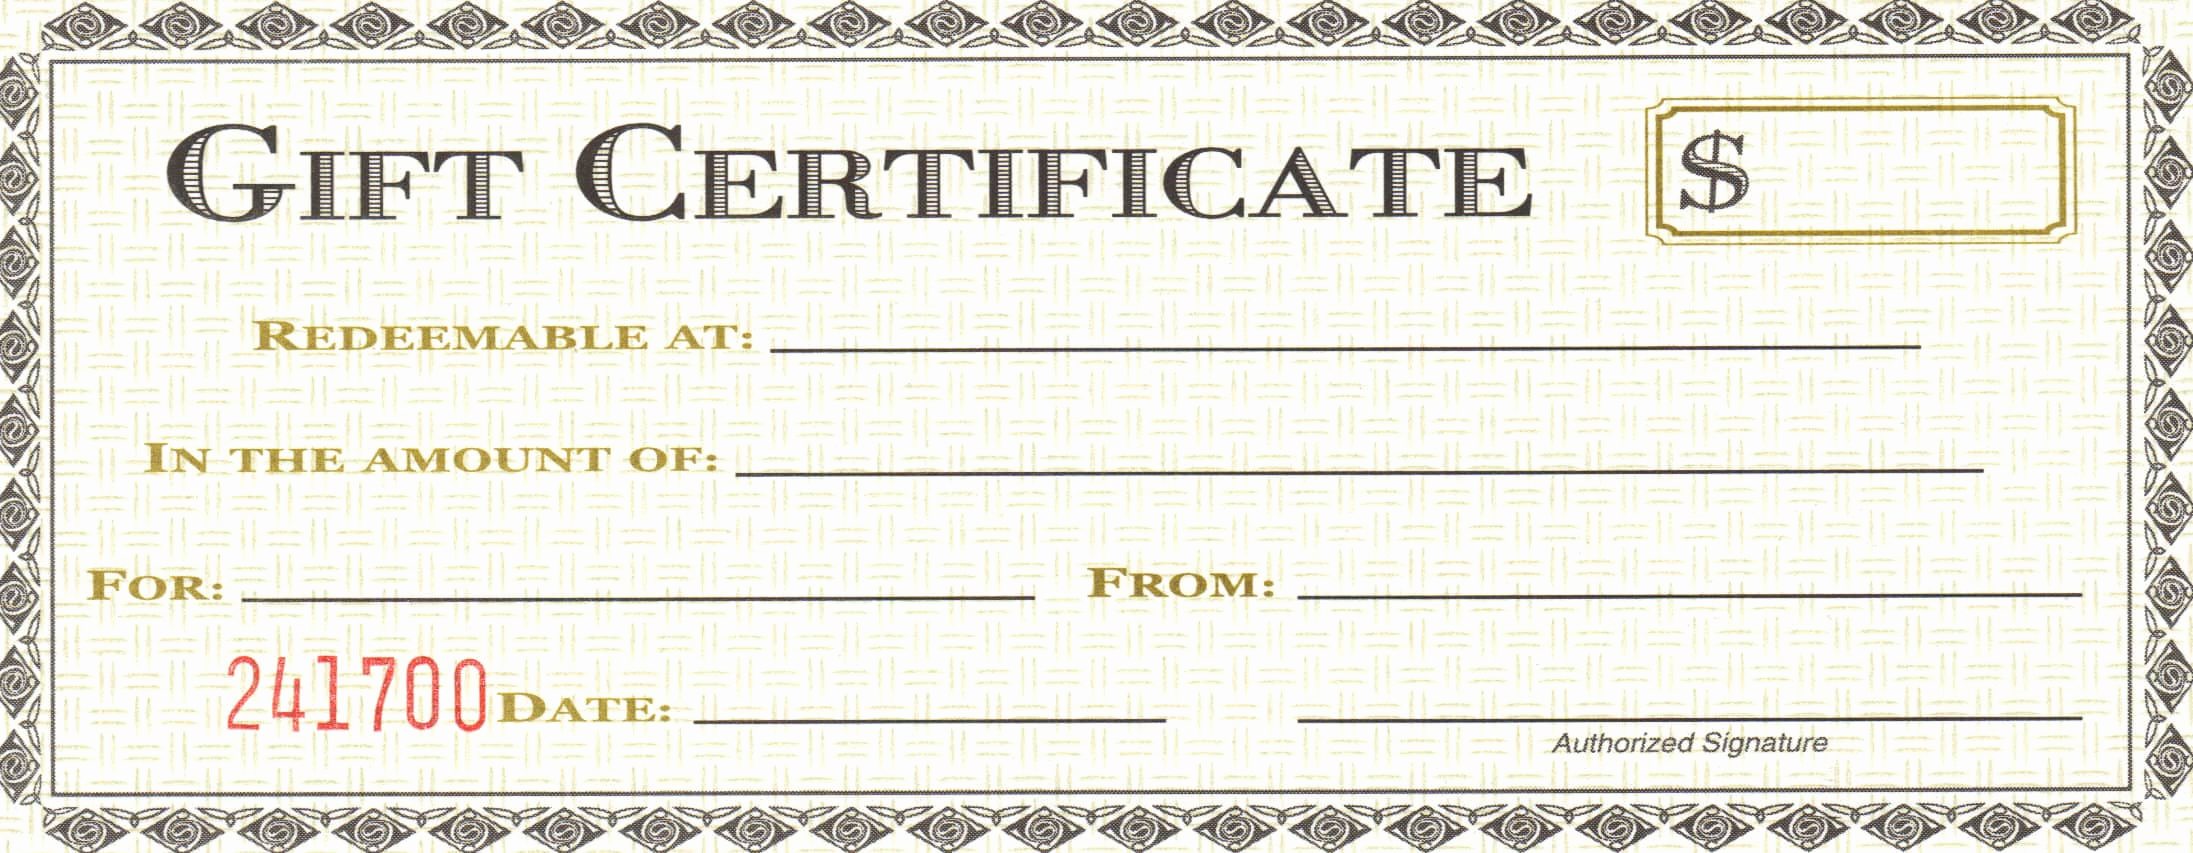 Sample Gift Certificate Template New 18 Gift Certificate Templates Excel Pdf formats